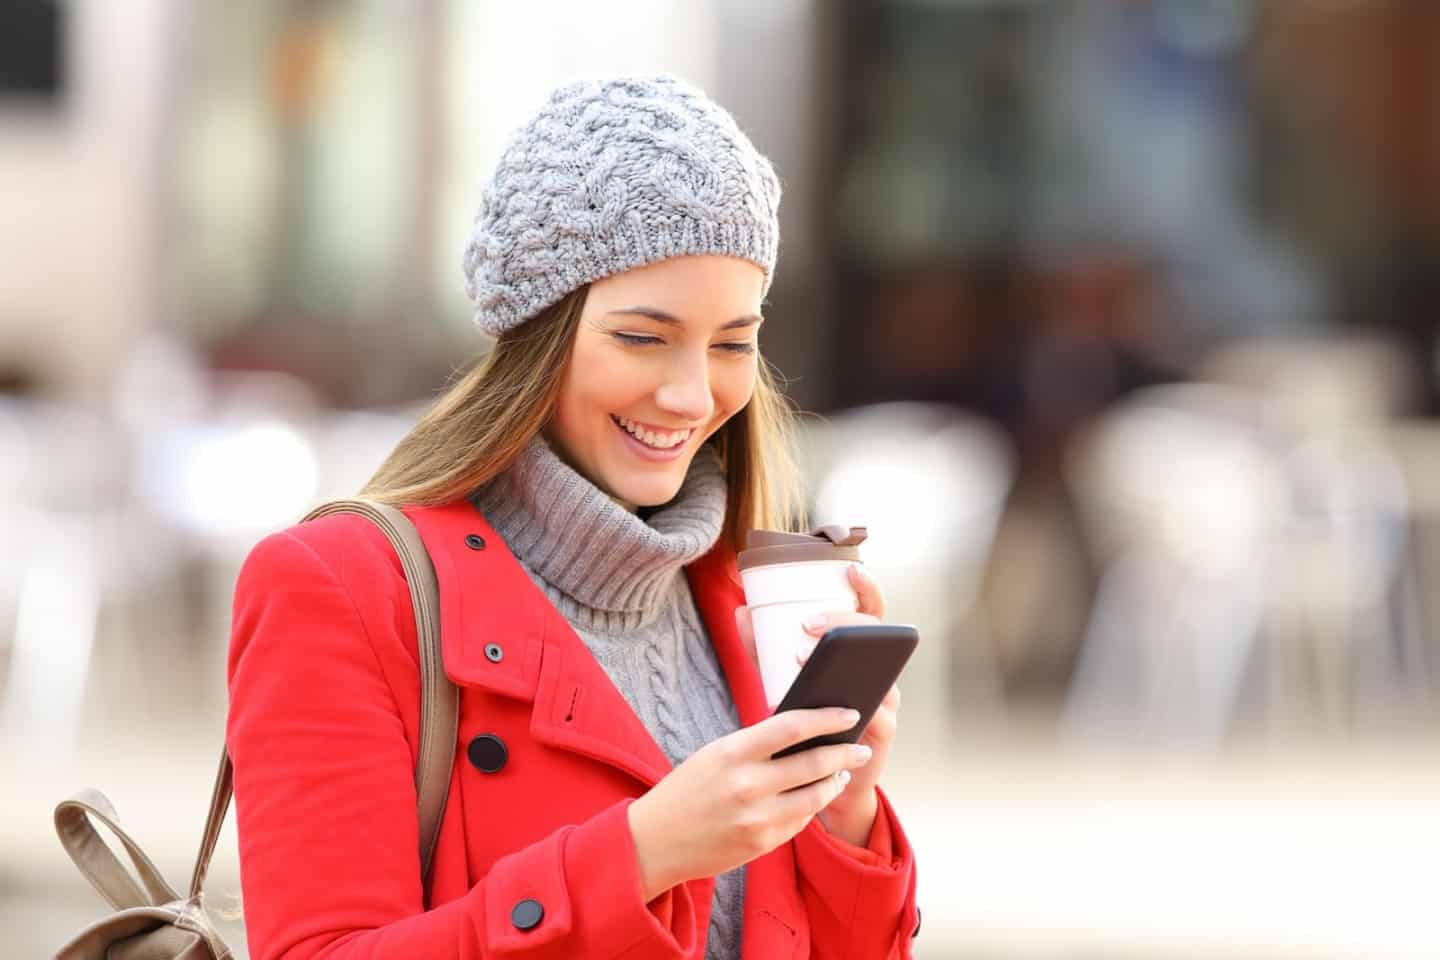 Why Your Holiday Strategy Should be Mobile‑First, Not Mobile‑Whenever